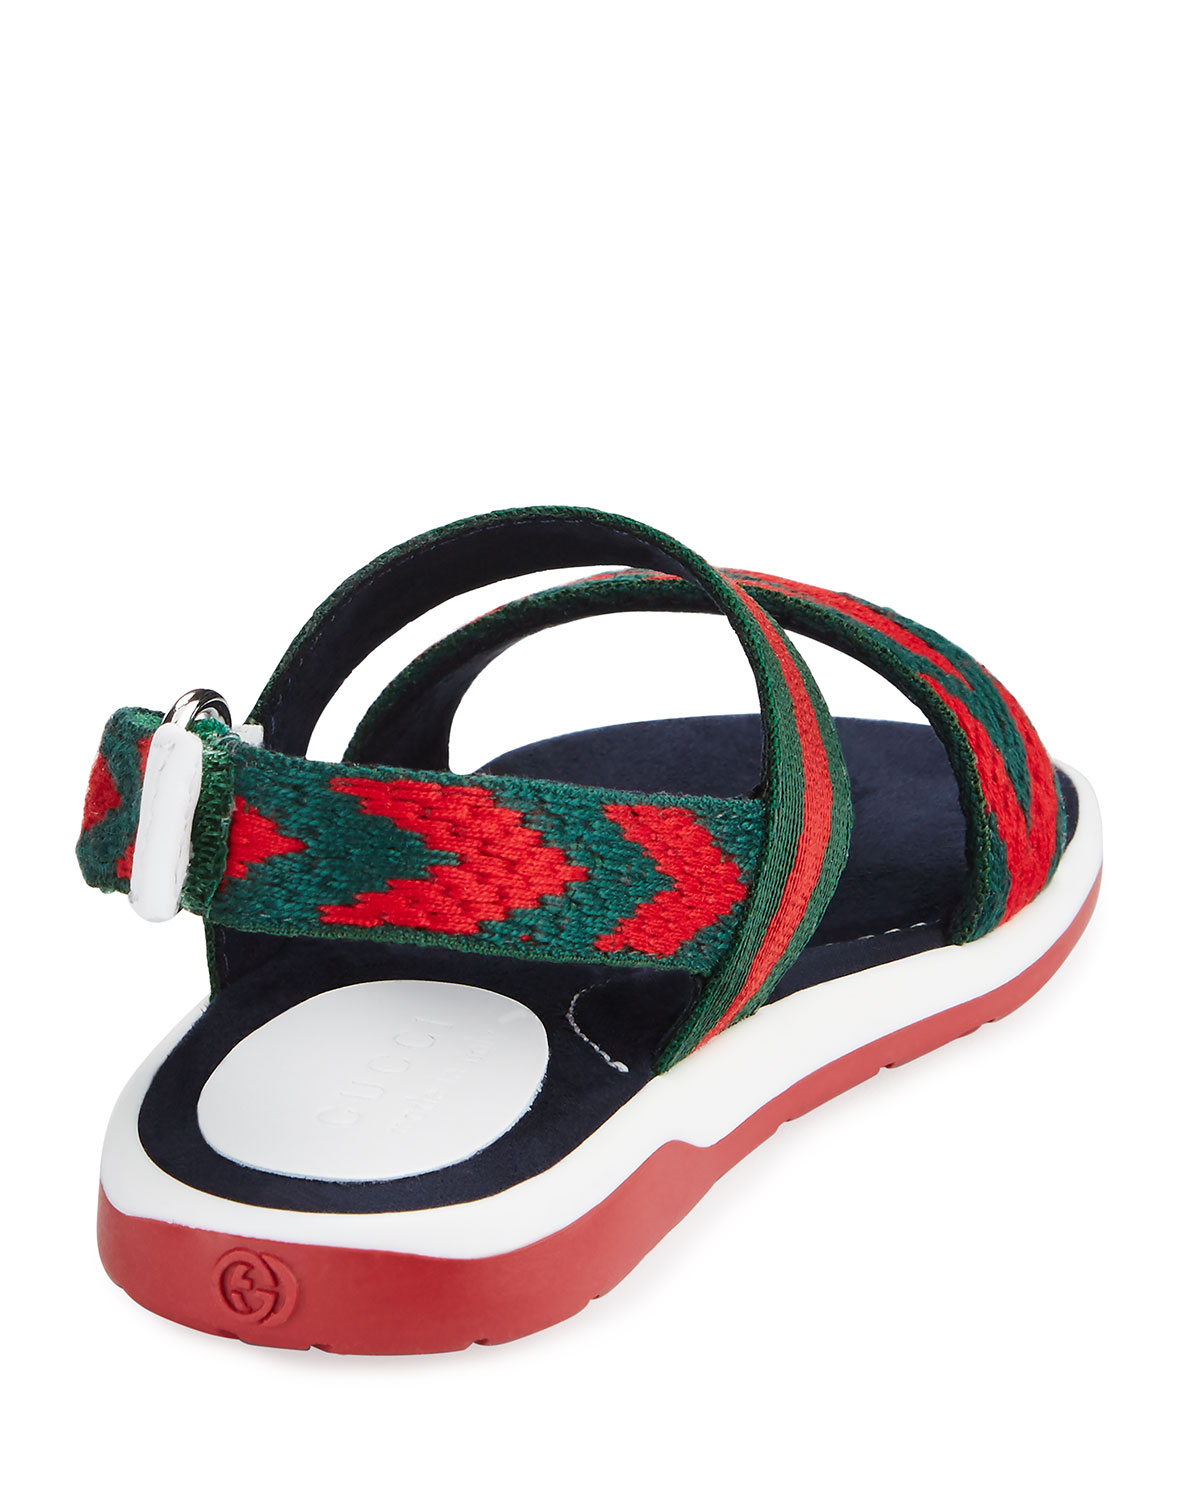 8d1cd5b0b Gucci Chevron Leather Sandals, Green/Red, Toddler | Neiman Marcus